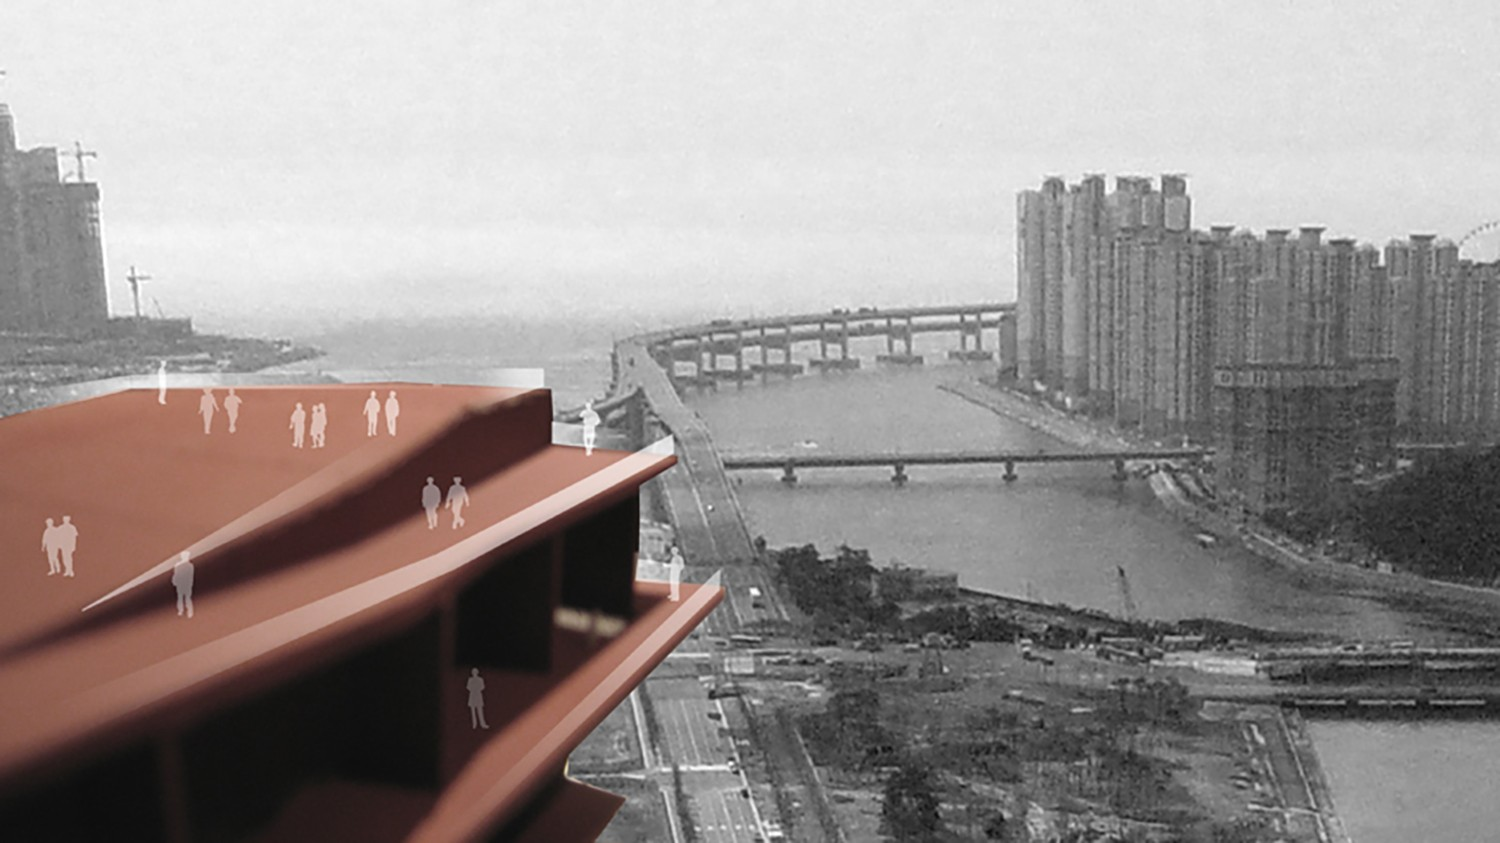 https://stevenholl.sfo2.digitaloceanspaces.com/uploads/projects/project-images/StevenHollArchitects_Busan_RoofView_WH.jpg